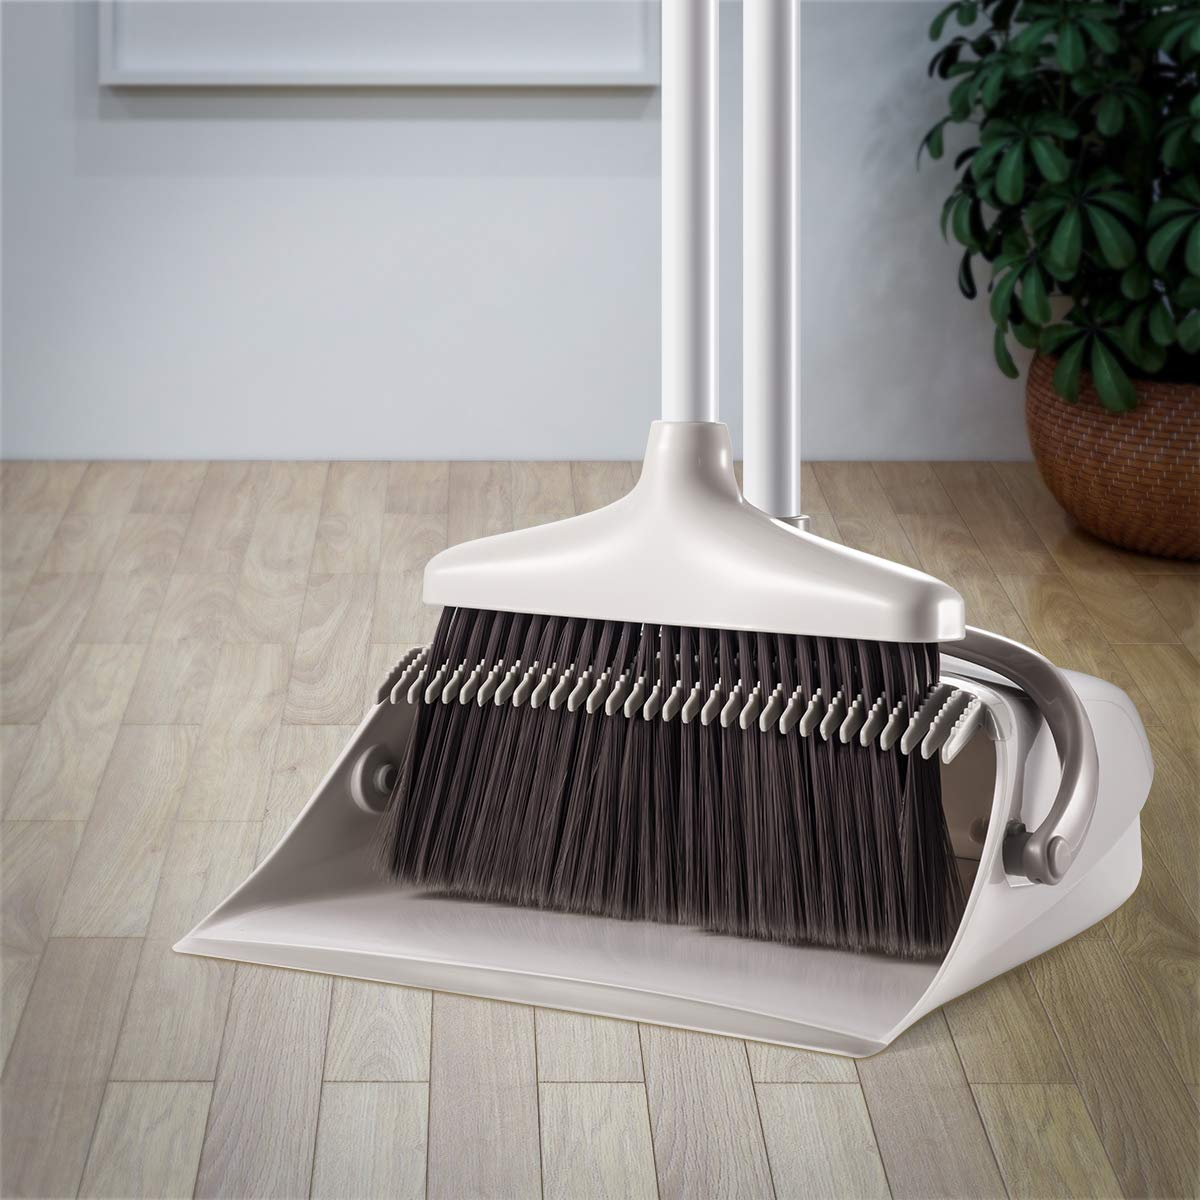 Broom and Dustpan Set, CQT Dust Pan and Broom with Long Handle for Home Kitchen Industry Lobby Floor Sweeping Upright Stand Up Dustpan Cleans Broom Combo by CQT (Image #4)